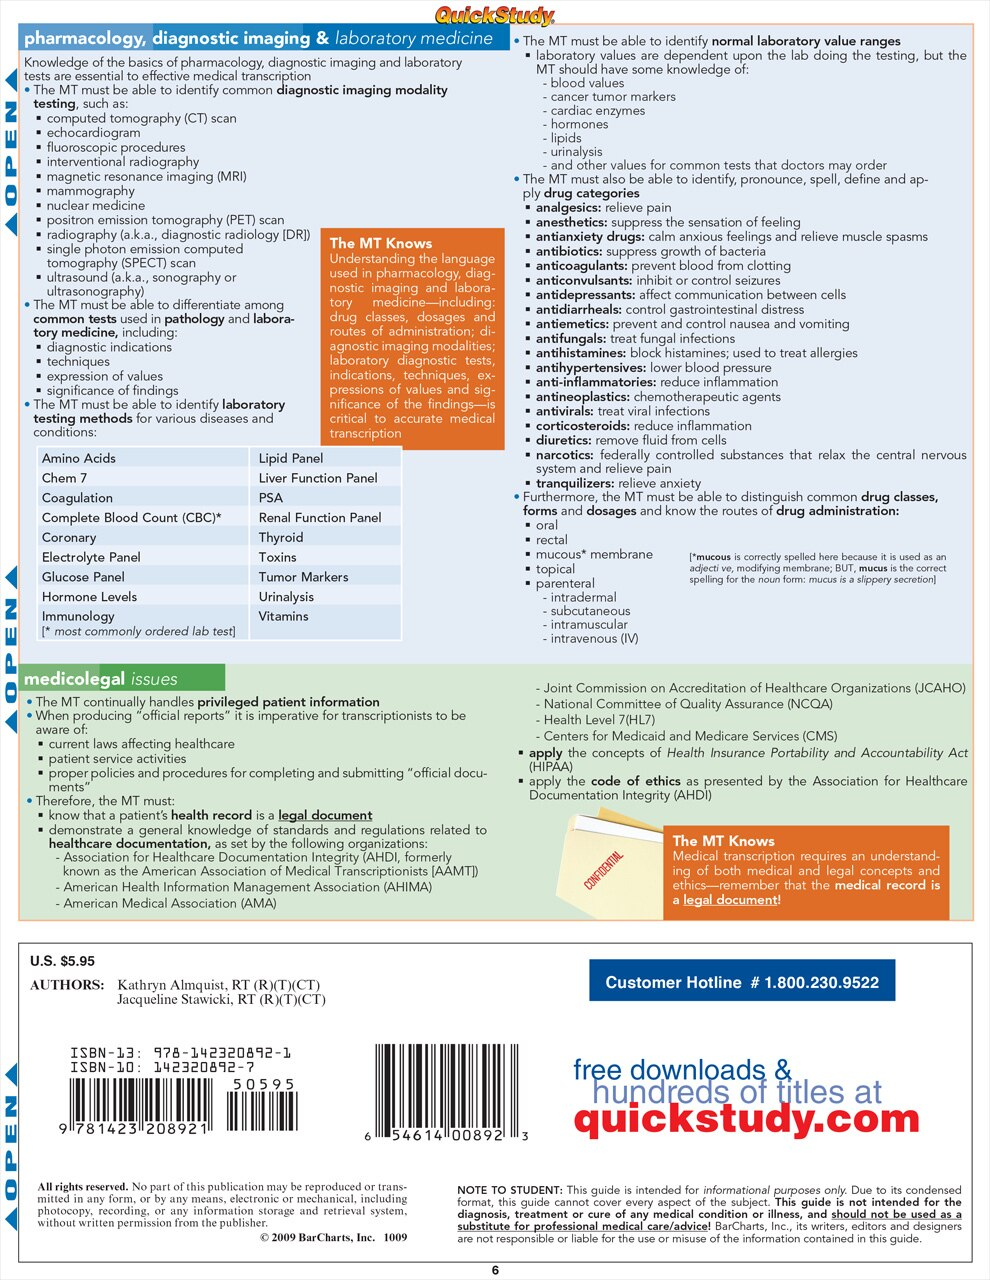 Quick Study QuickStudy Medical Transcription Laminated Reference Guide BarCharts Publishing Medical Guide Back Image